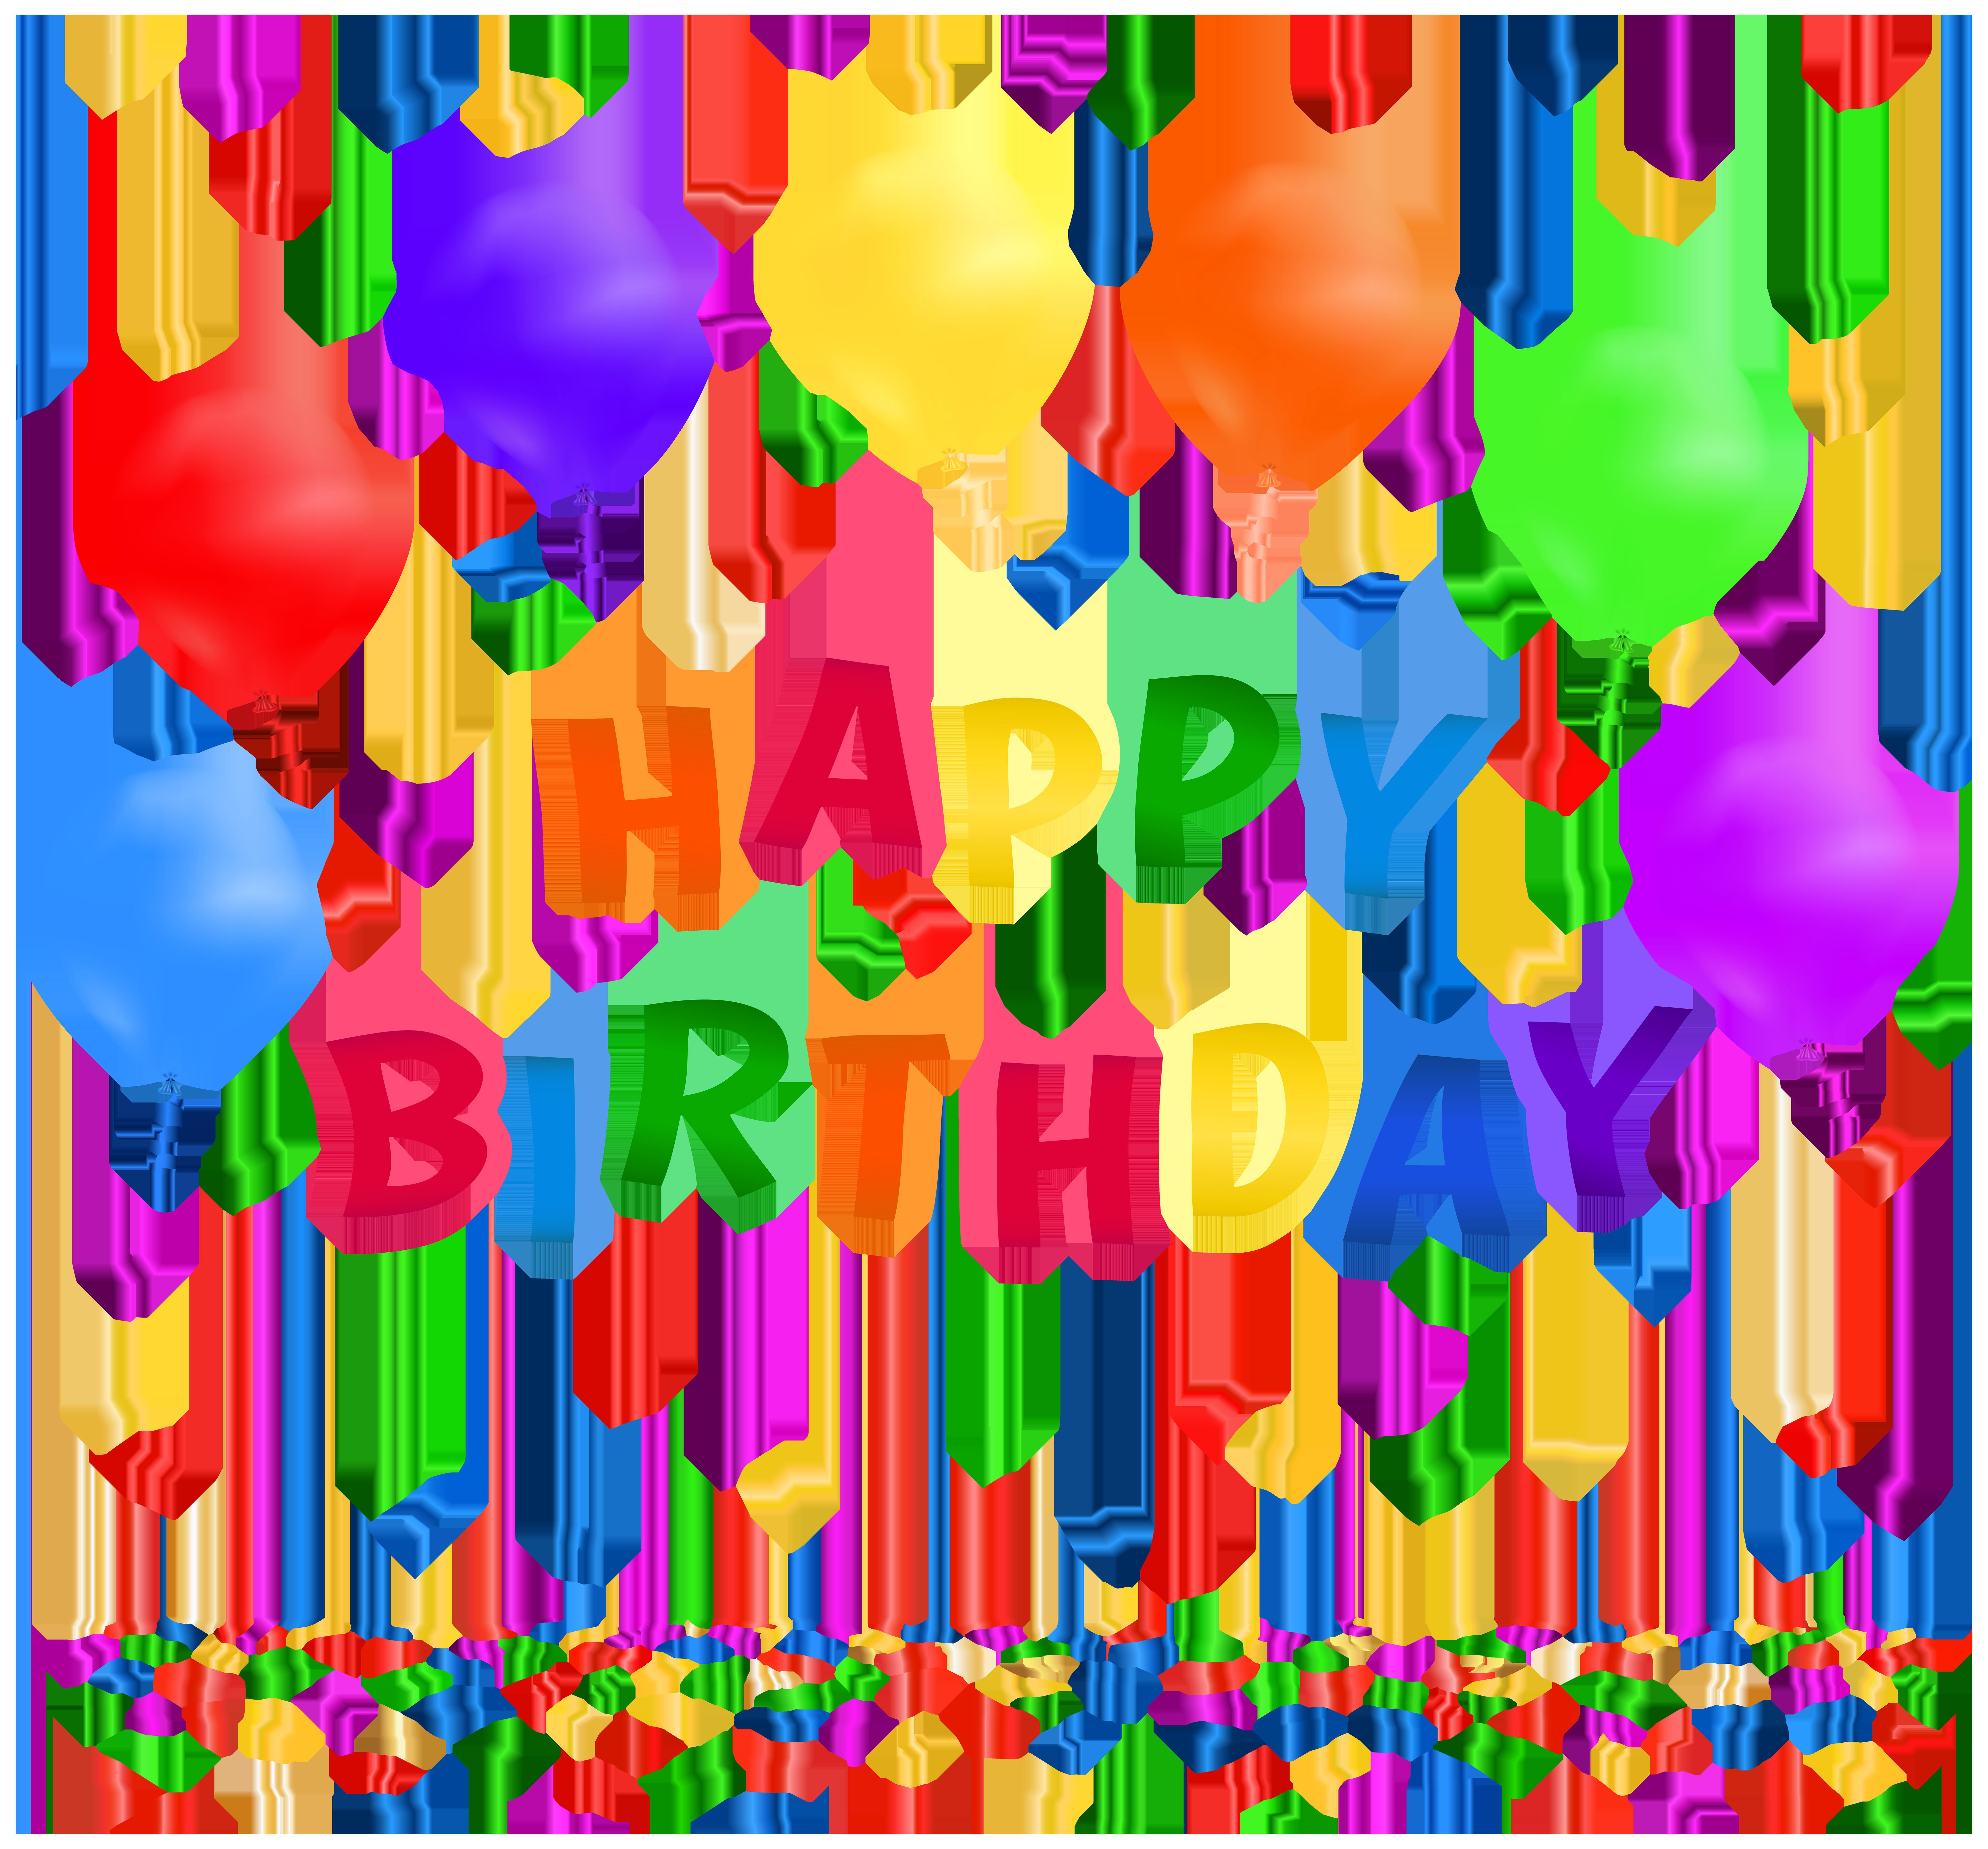 happy birthday border clip art ; Happy-birthday-with-confetti-clip-art-image